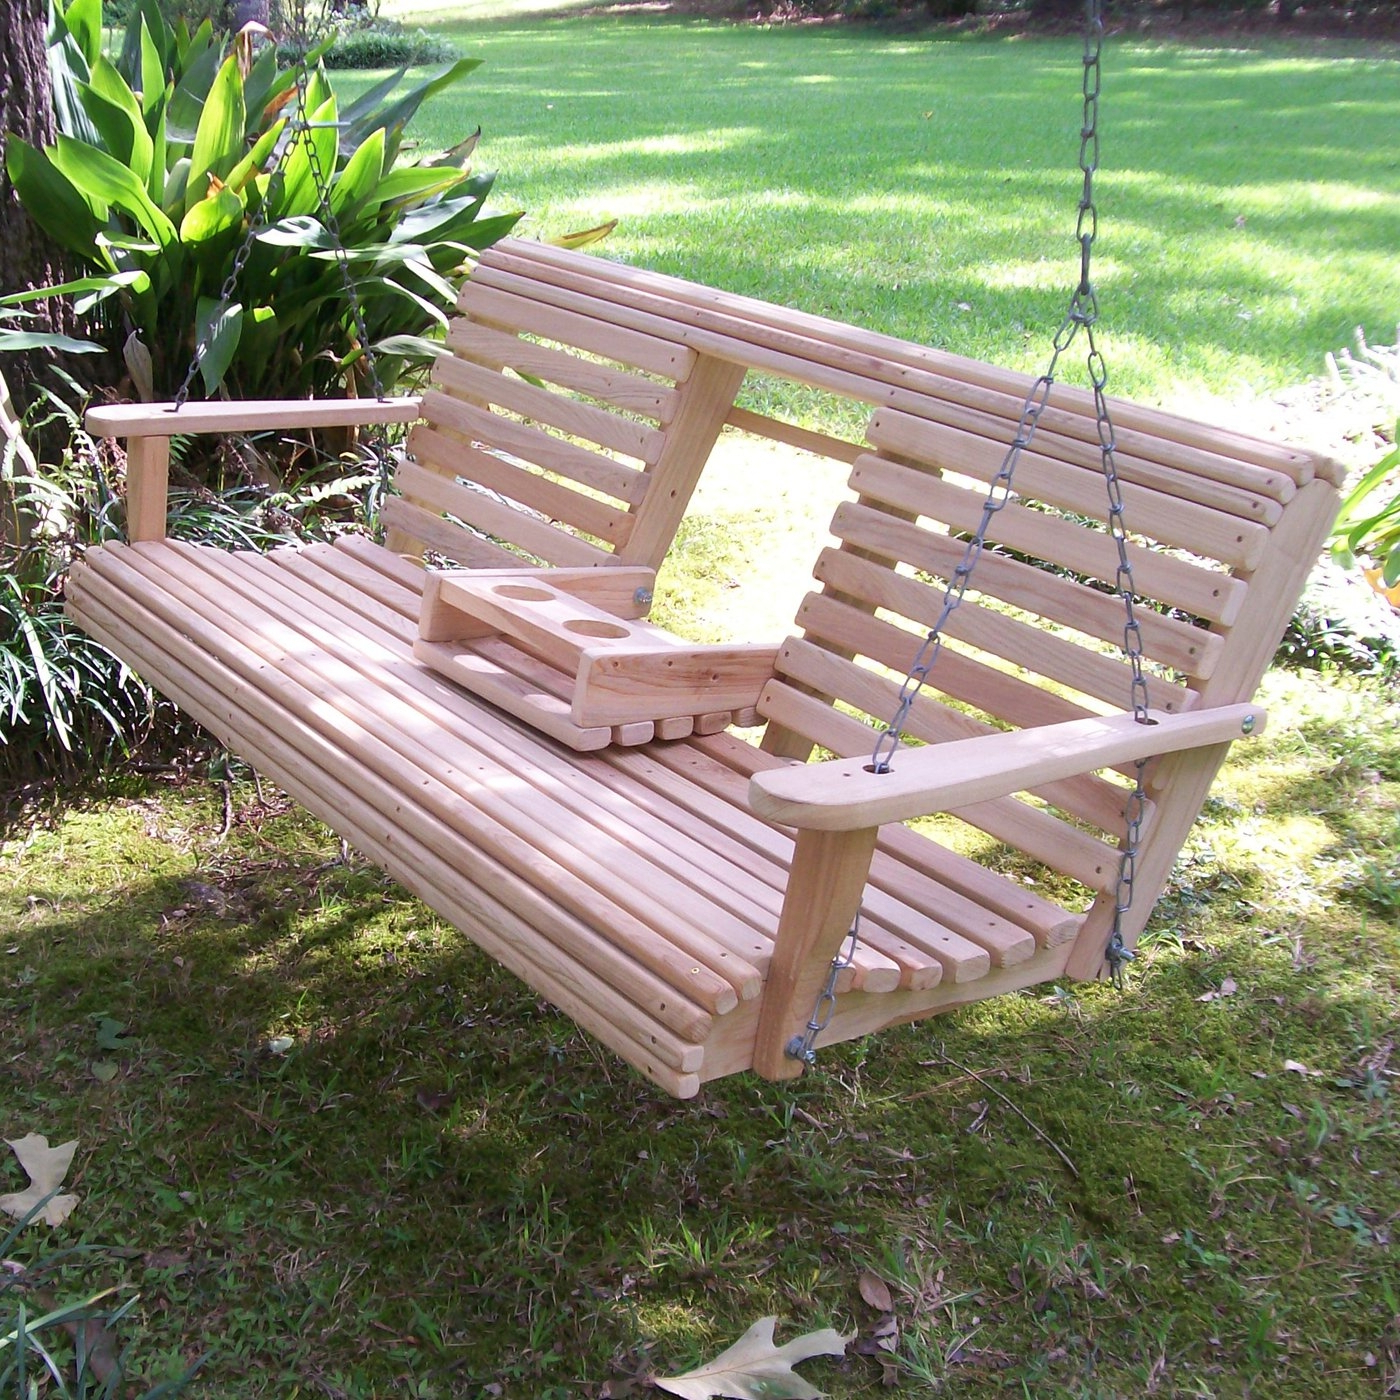 5ft Porch Swing Cushion With Regard To Current Patio Hanging Porch Swings (View 22 of 25)